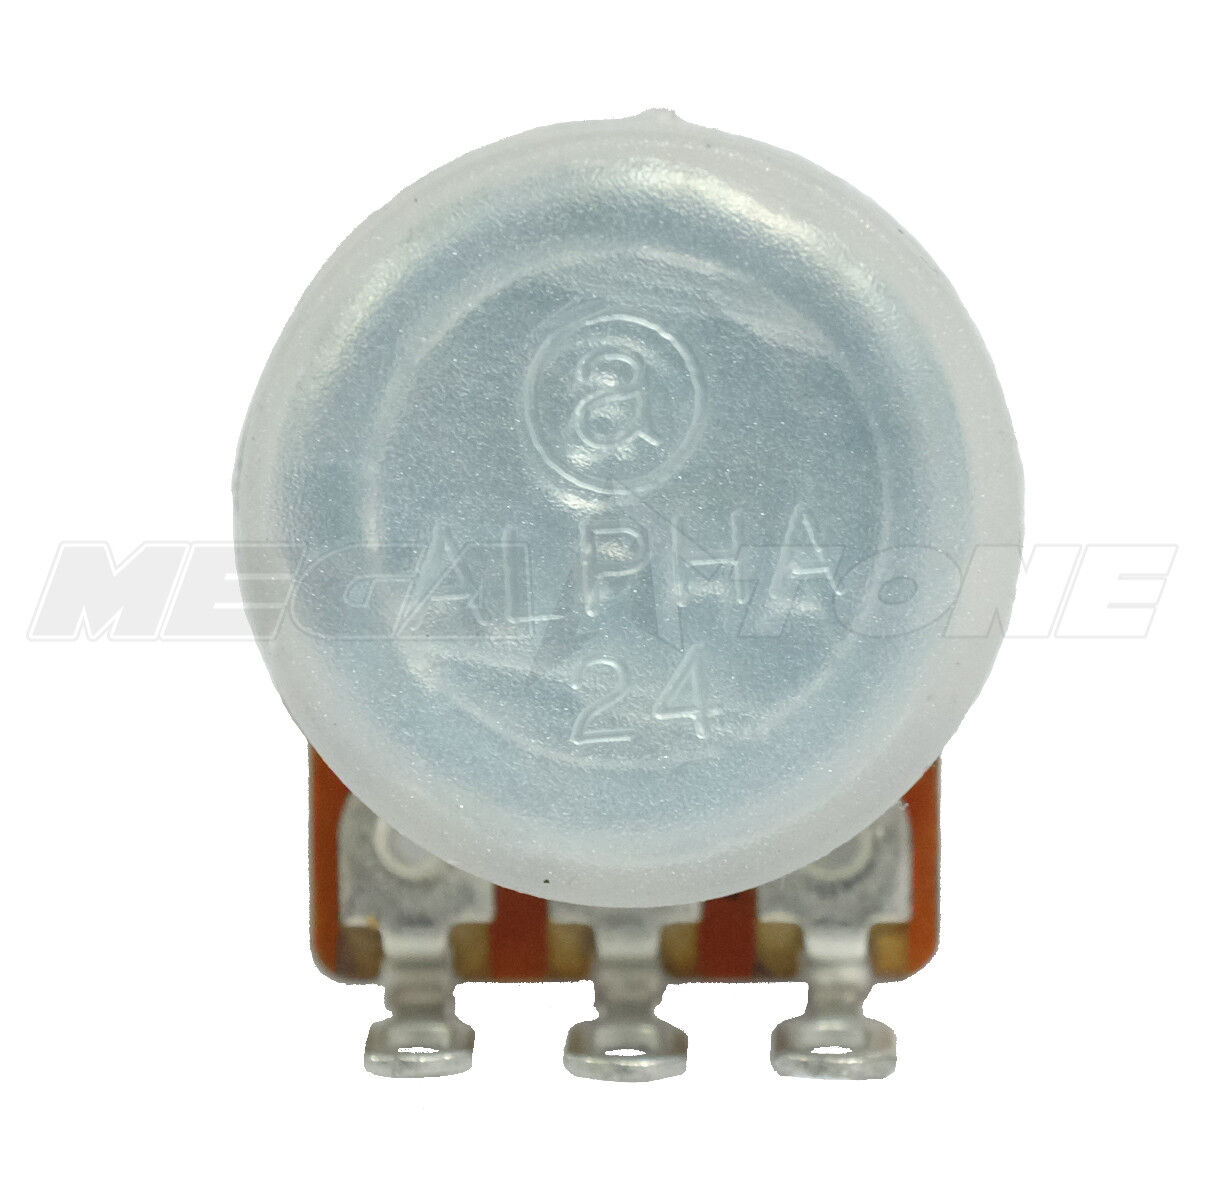 B1K Ohm PCB Mount Potentiometer USA Seller! Includes Dust Seal Alpha Brand